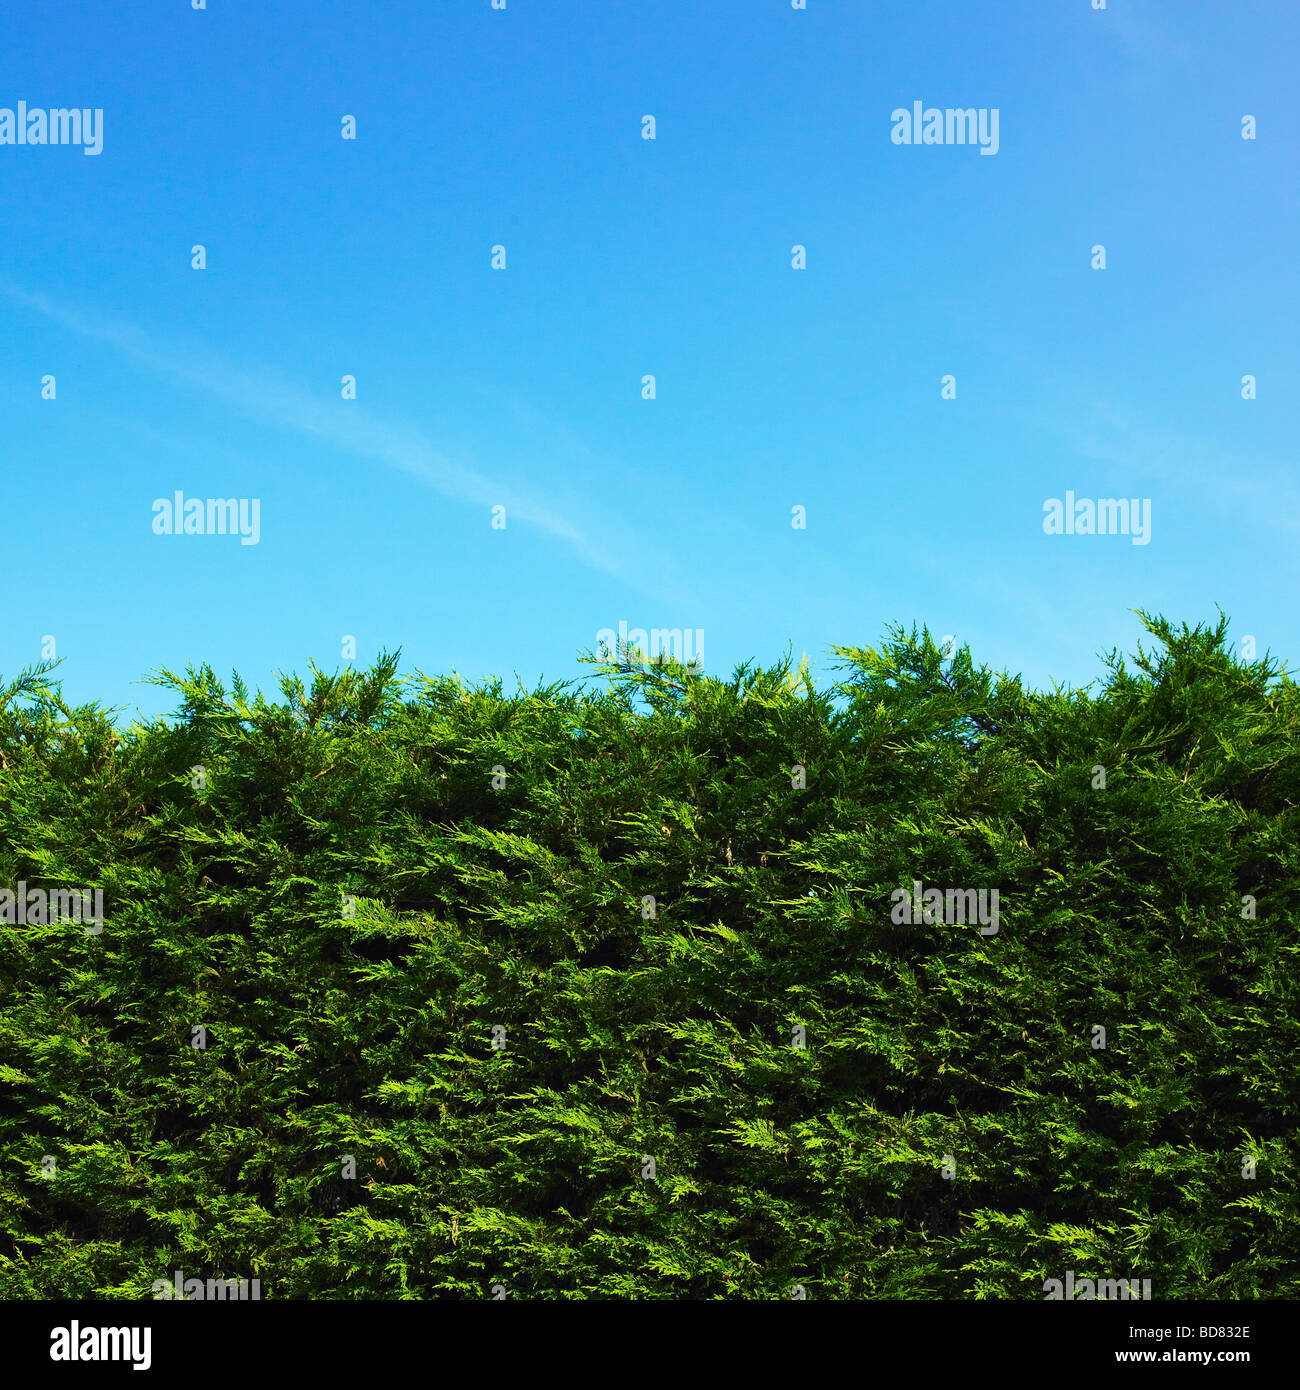 High Leylandii hedge and blue sky. - Stock Image